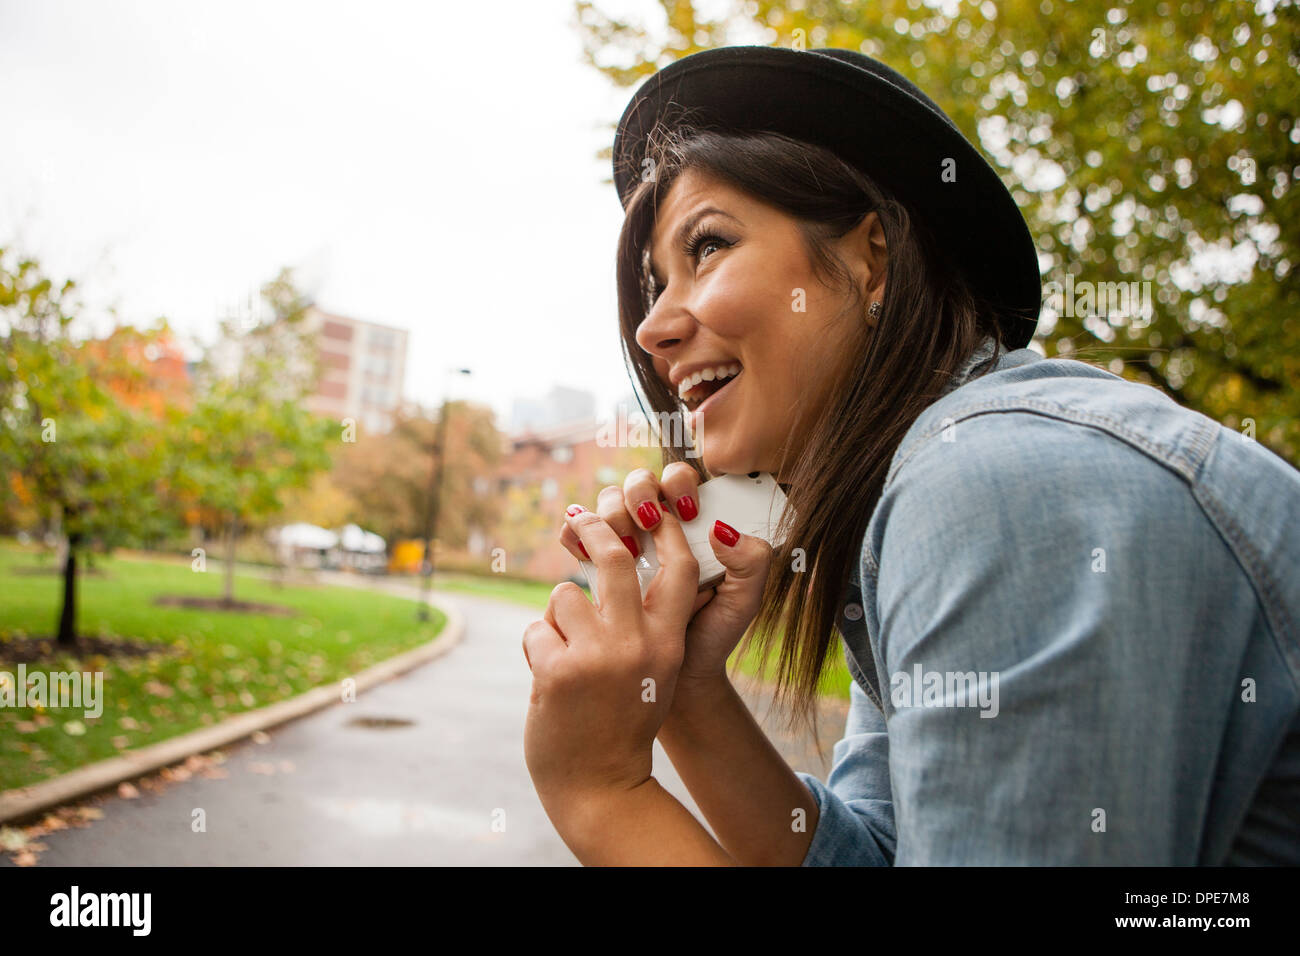 Woman holding cellular phone to chin - Stock Image